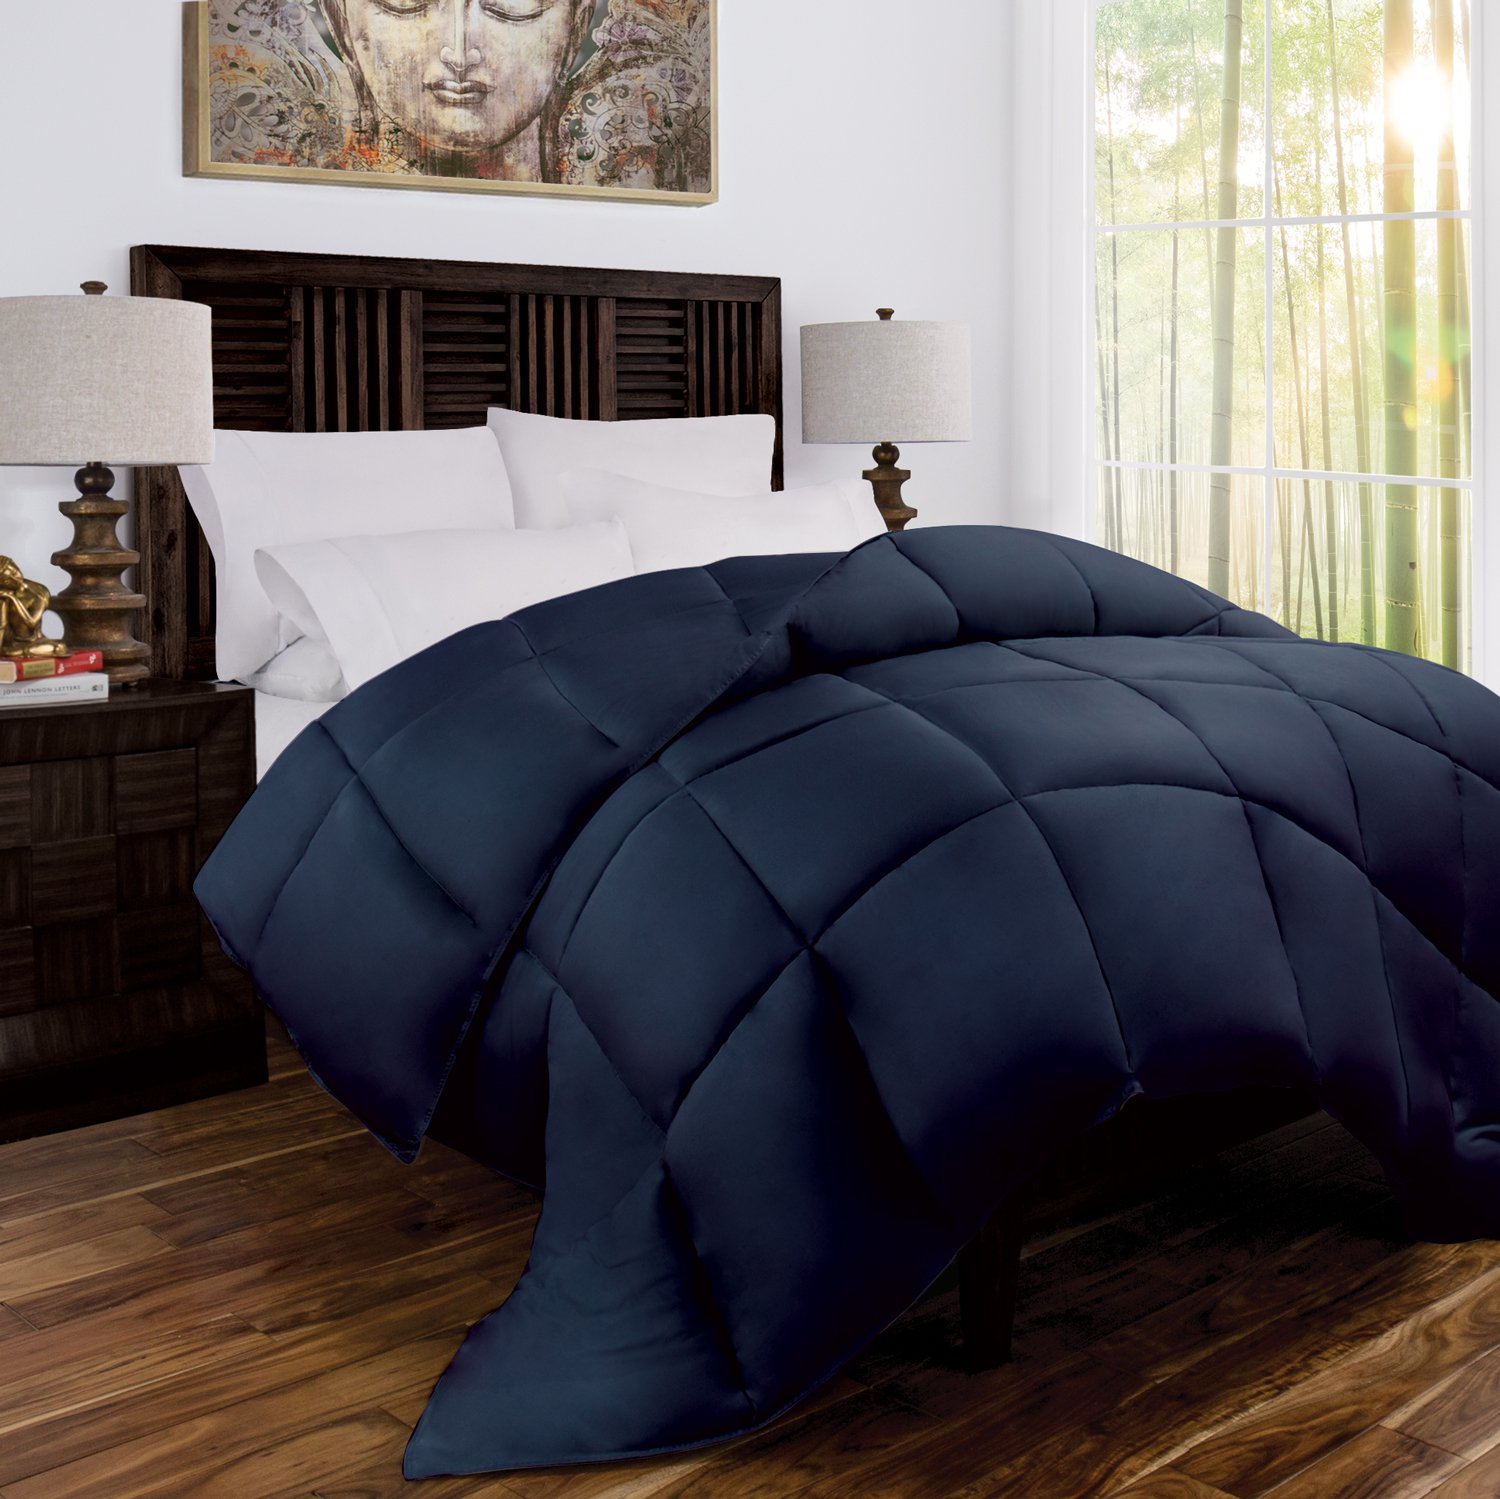 Eco-Friendly Hypoallergenic Comforter - Full/Queen